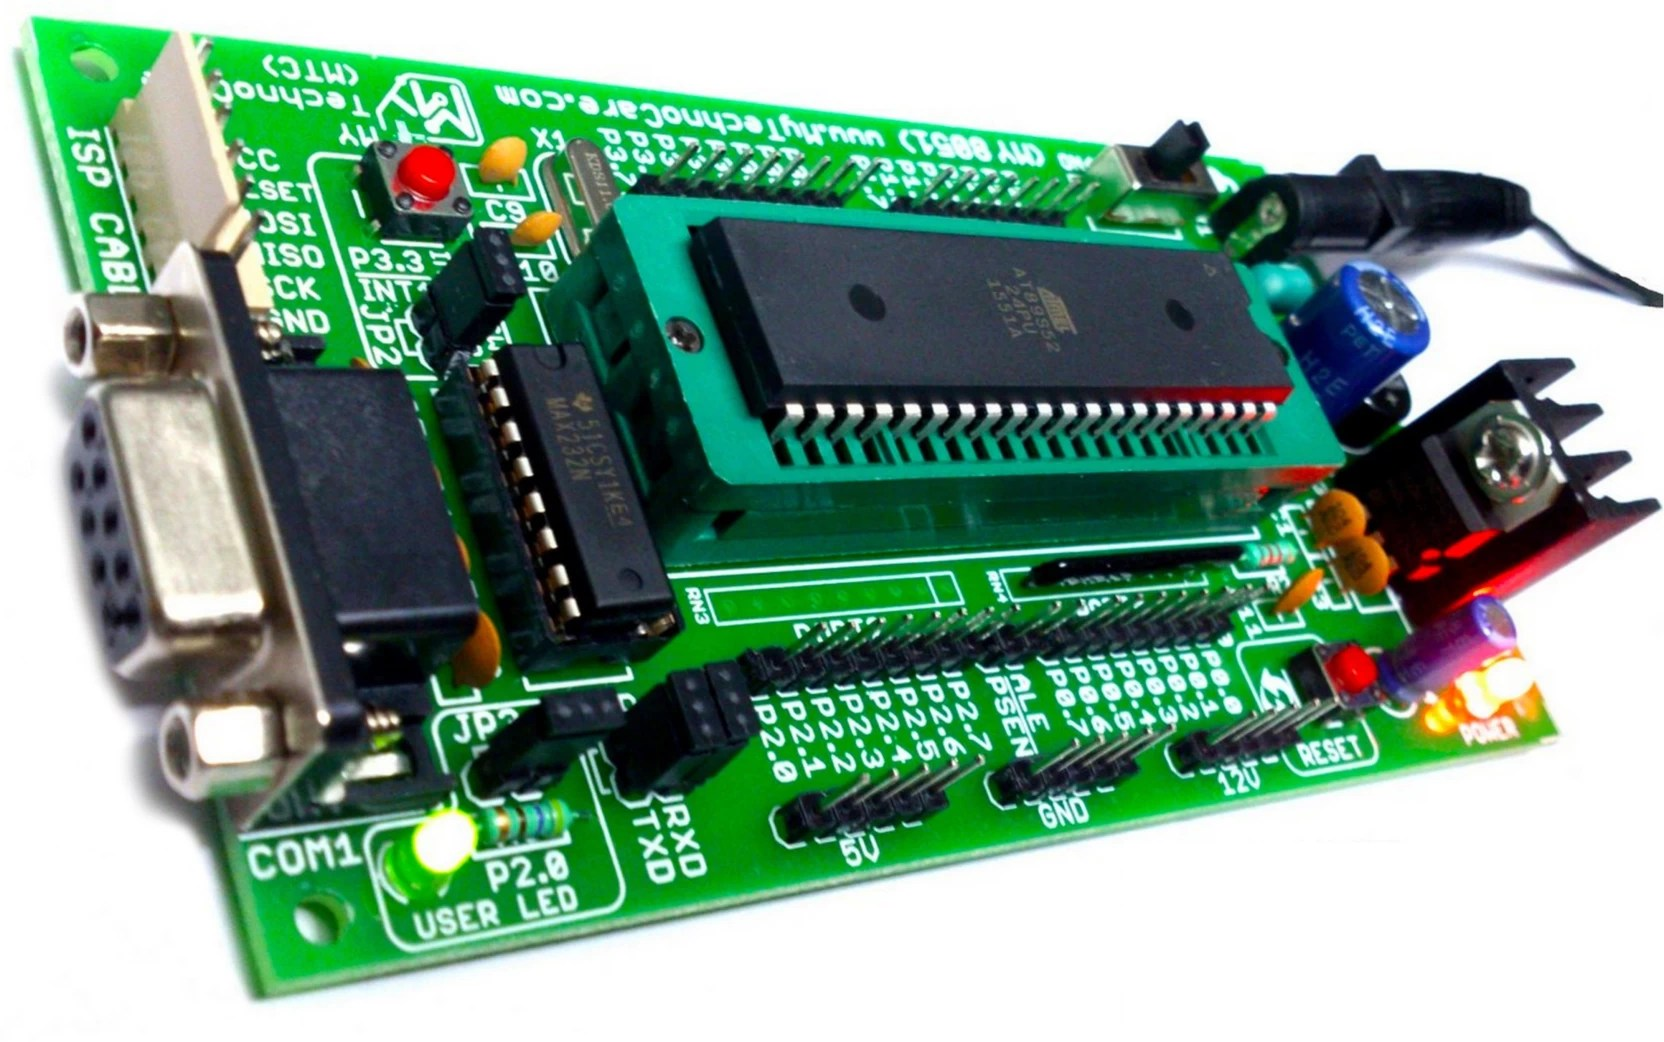 hight resolution of my technocare 8051 development board zif socket max232 at89s52 microcontroller ic project evaluation kit support atmel at89s51 xx 89cxx 89v51rd2